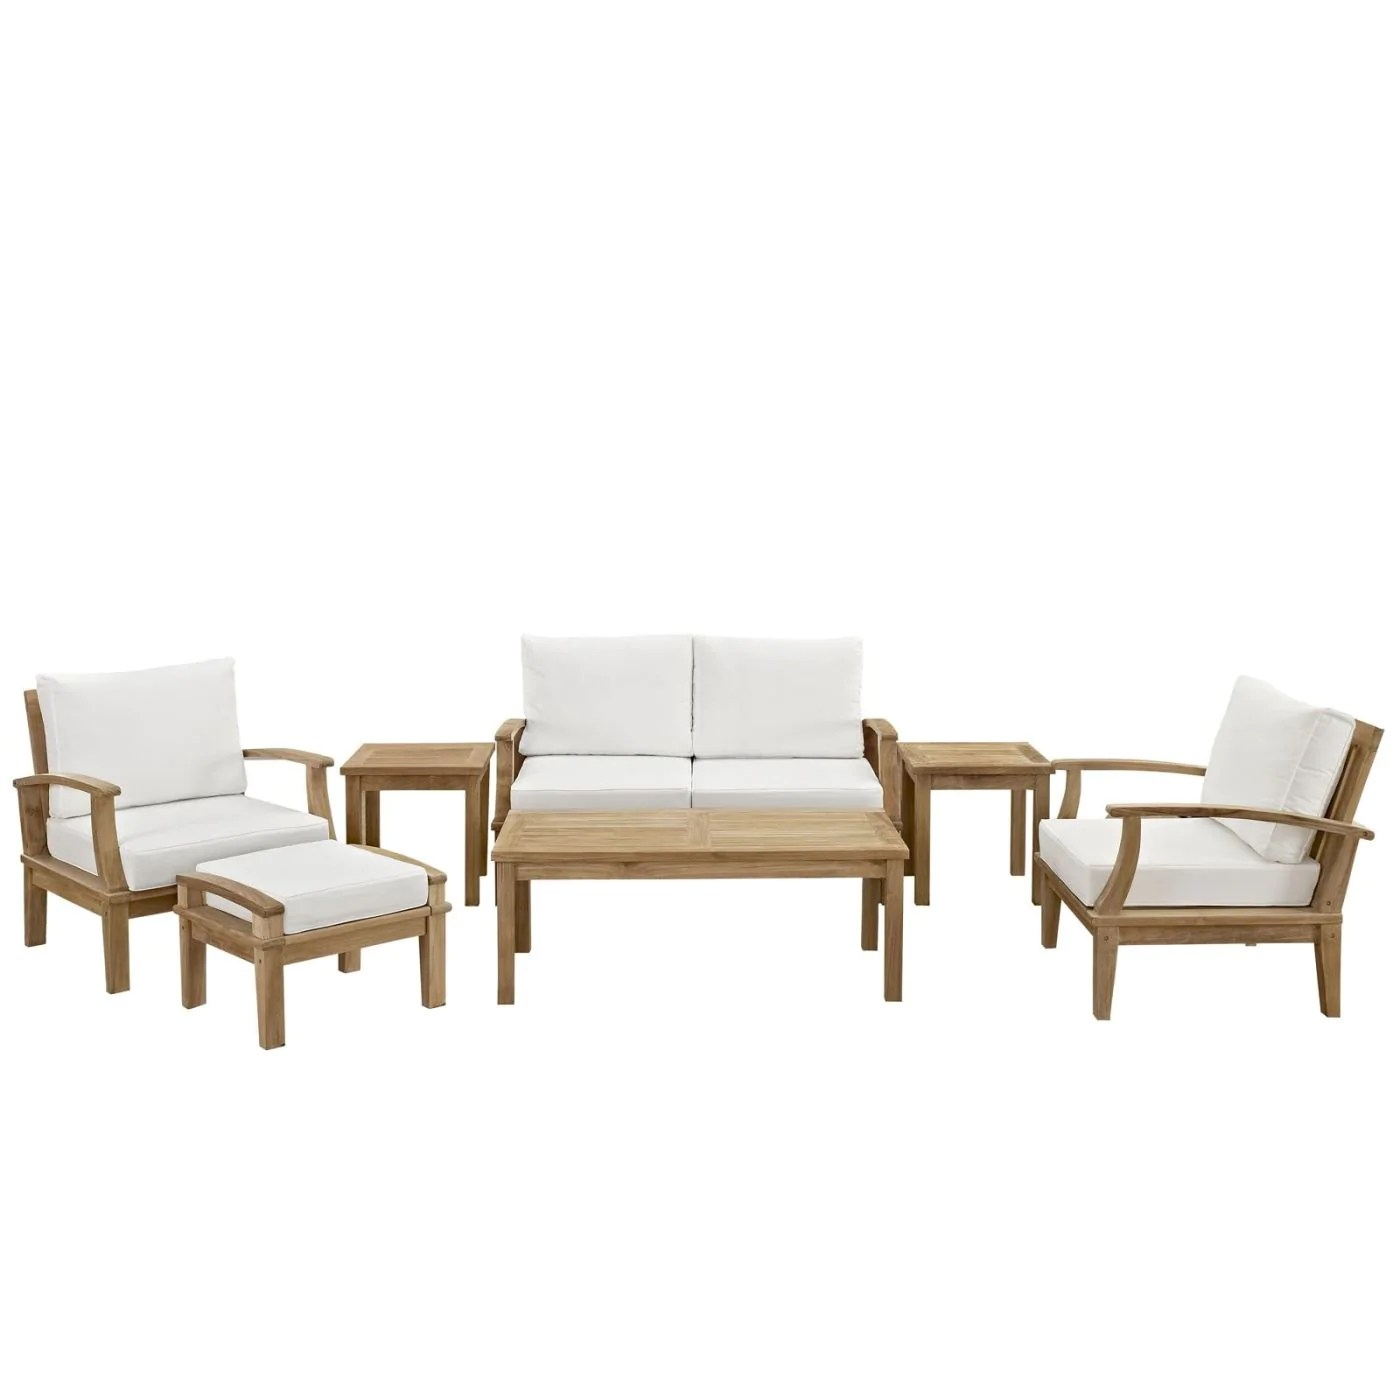 7 Piece Patio Set Modway Outdoor Patio Sets On Sale Eei 1486 Nat Whi Set Marina 7 Piece Outdoor Patio Teak Sofa Set Only Only 2 230 00 At Contemporary Furniture